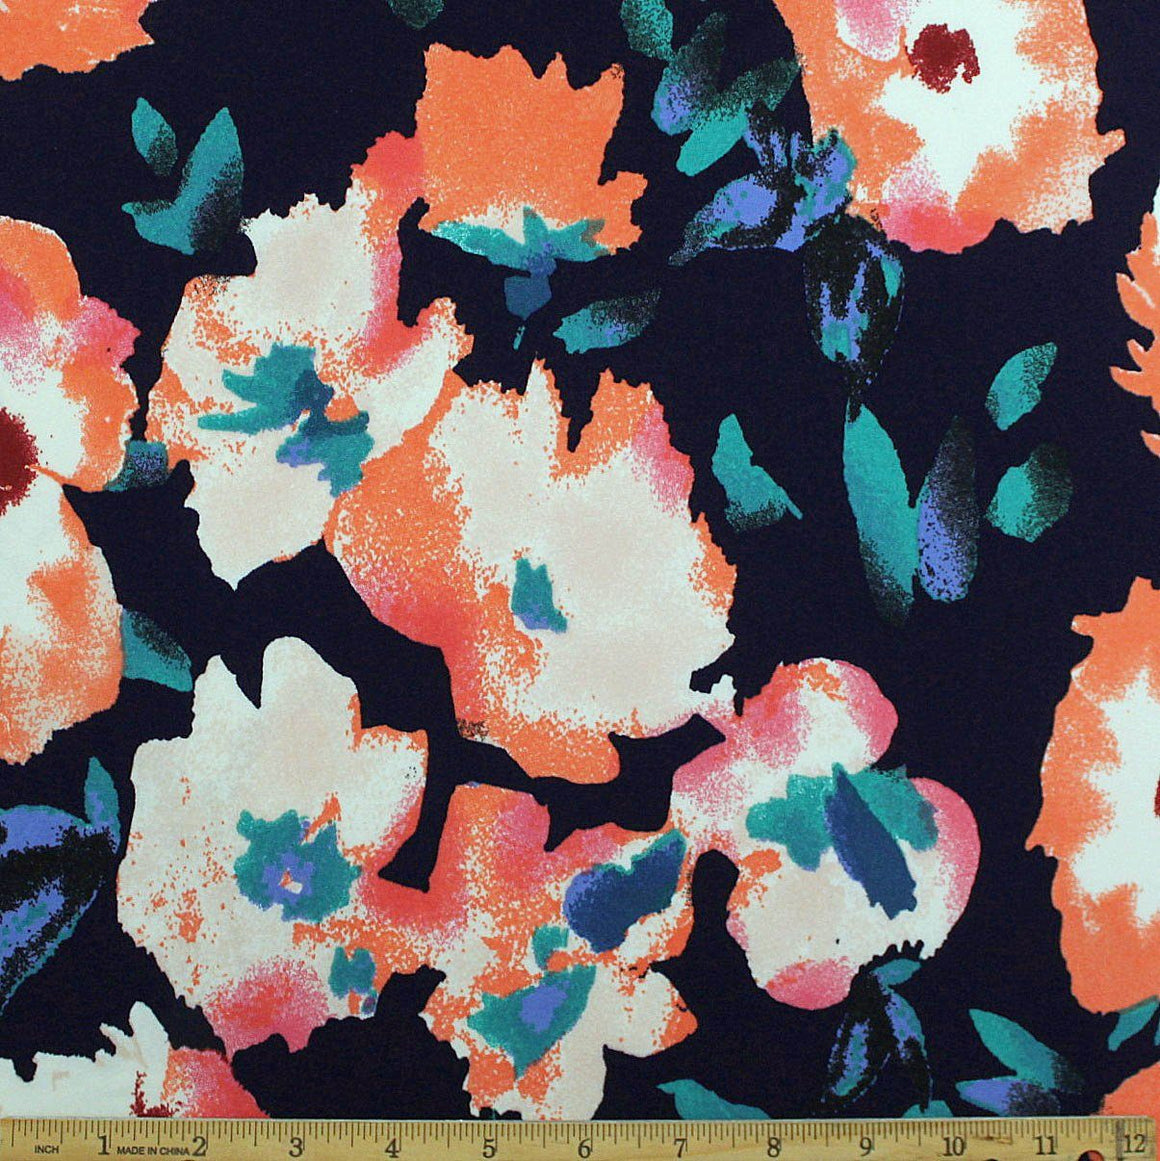 Navy Teal Coral Periwinkle and Burgundy Painted Floral Double Brushed Poly Spandex Knit, 1 yard - Raspberry Creek Fabrics